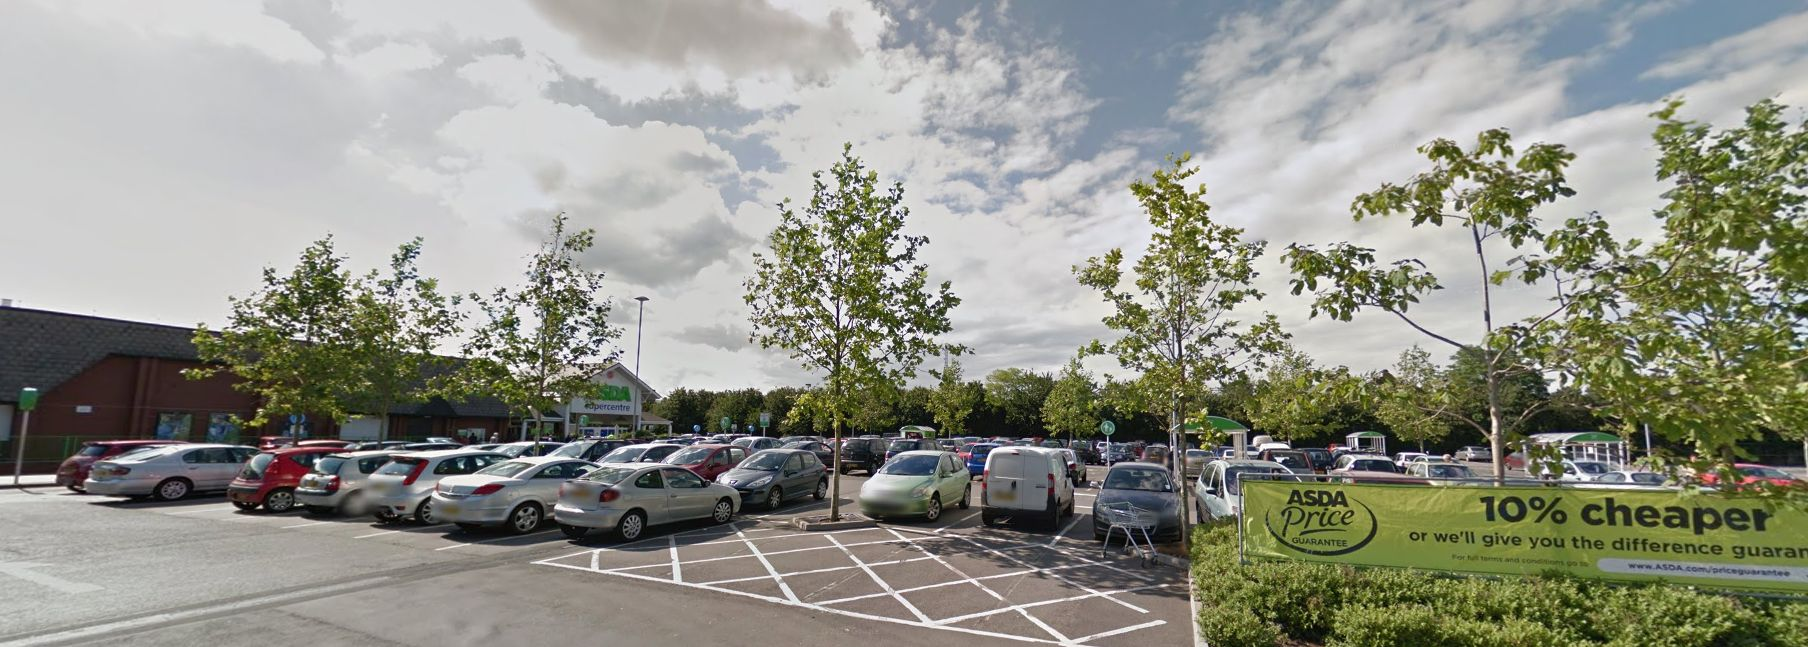 Firefighters free toddler who locked itself in car in Asda car park